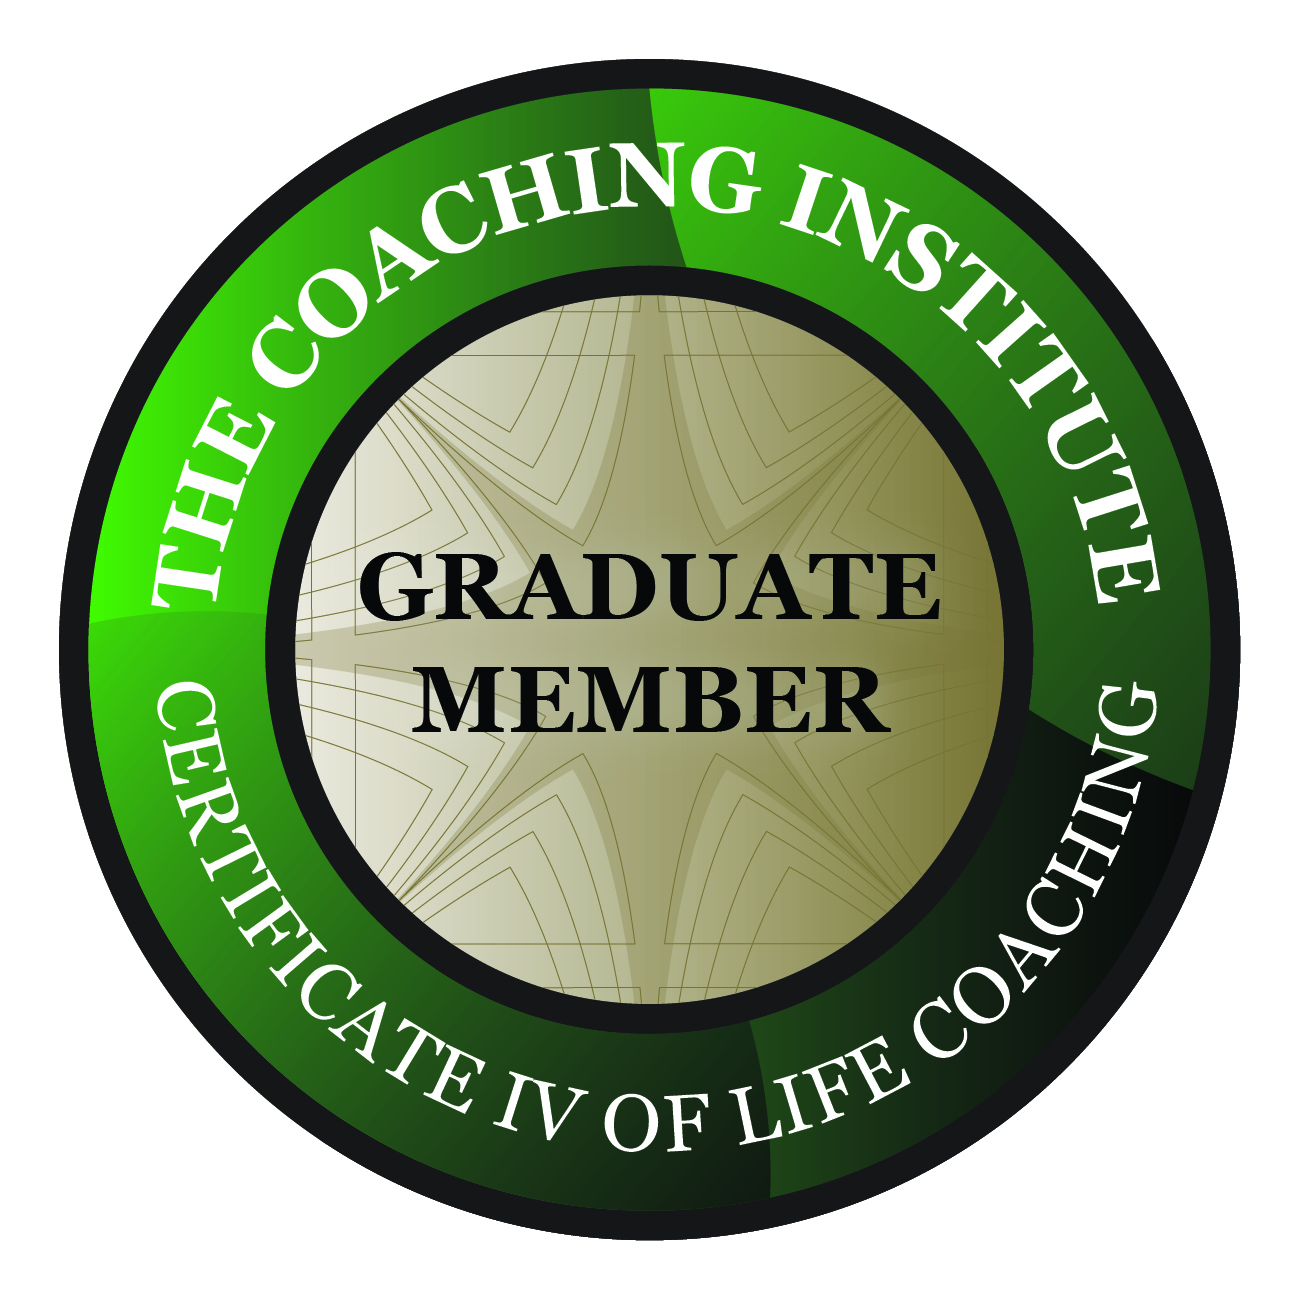 Certificate IV of Life Coaching  Members Badge High Resolution